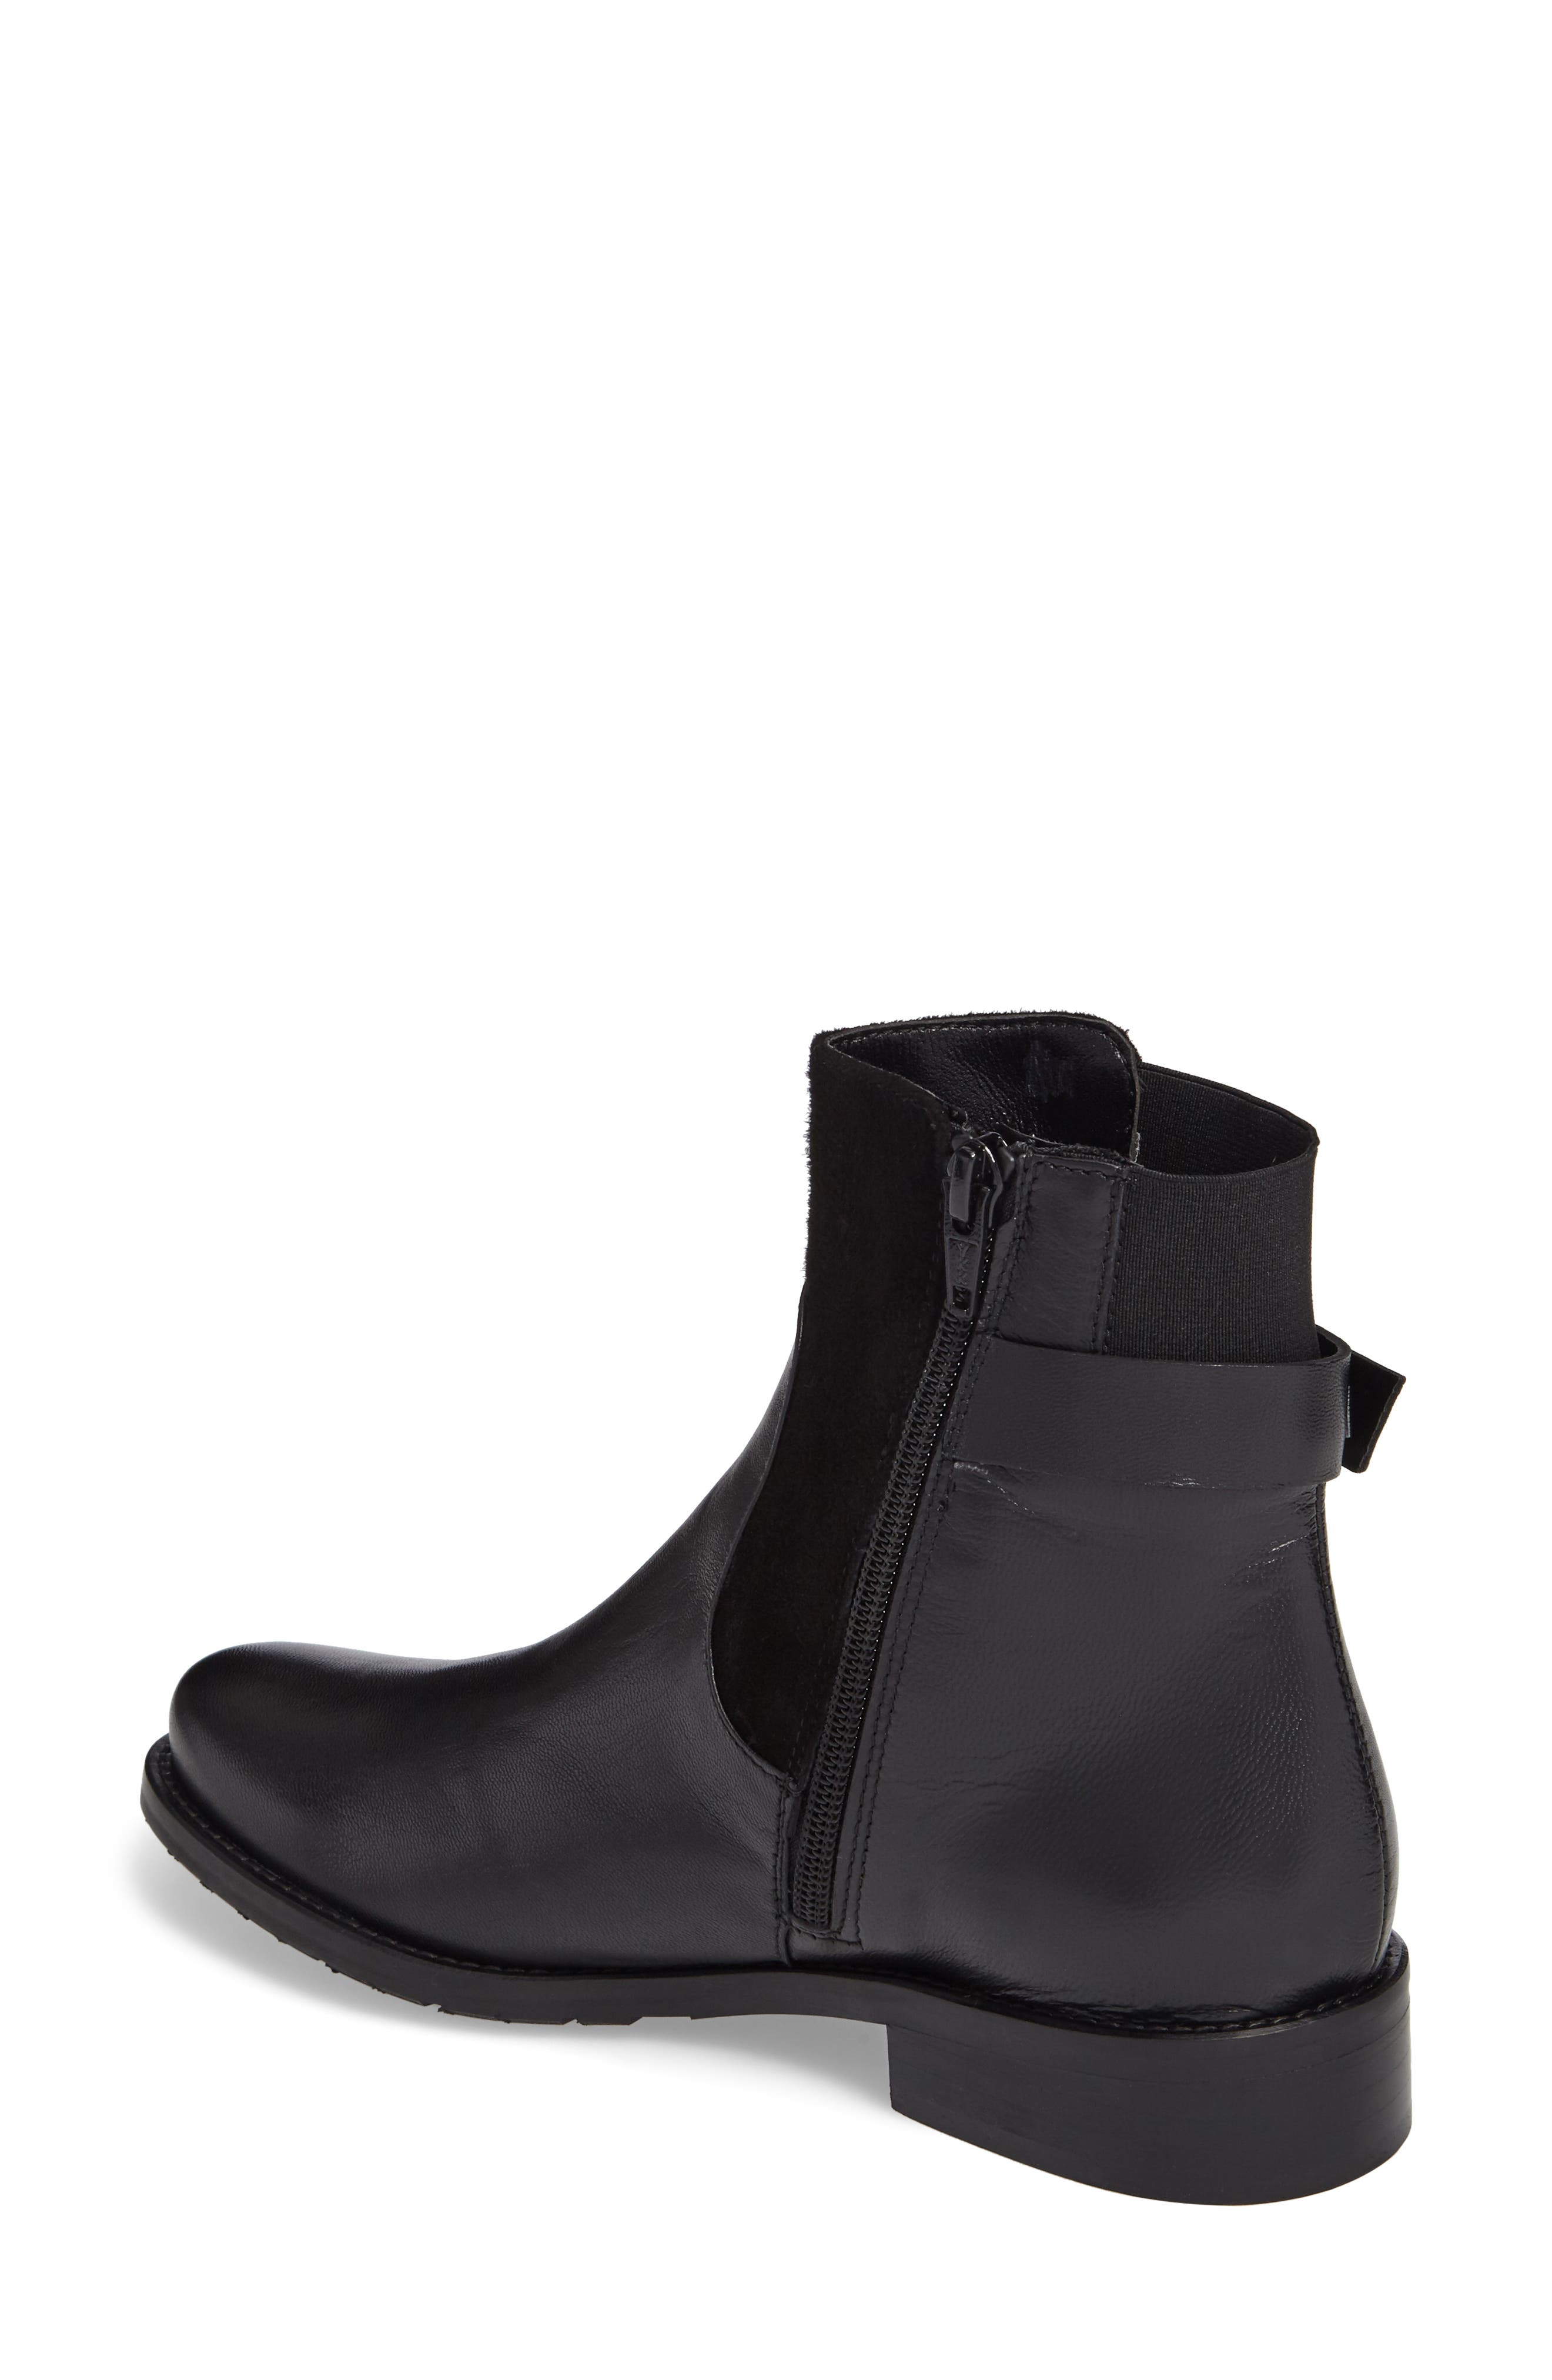 Samira Bootie,                             Alternate thumbnail 2, color,                             Black Leather